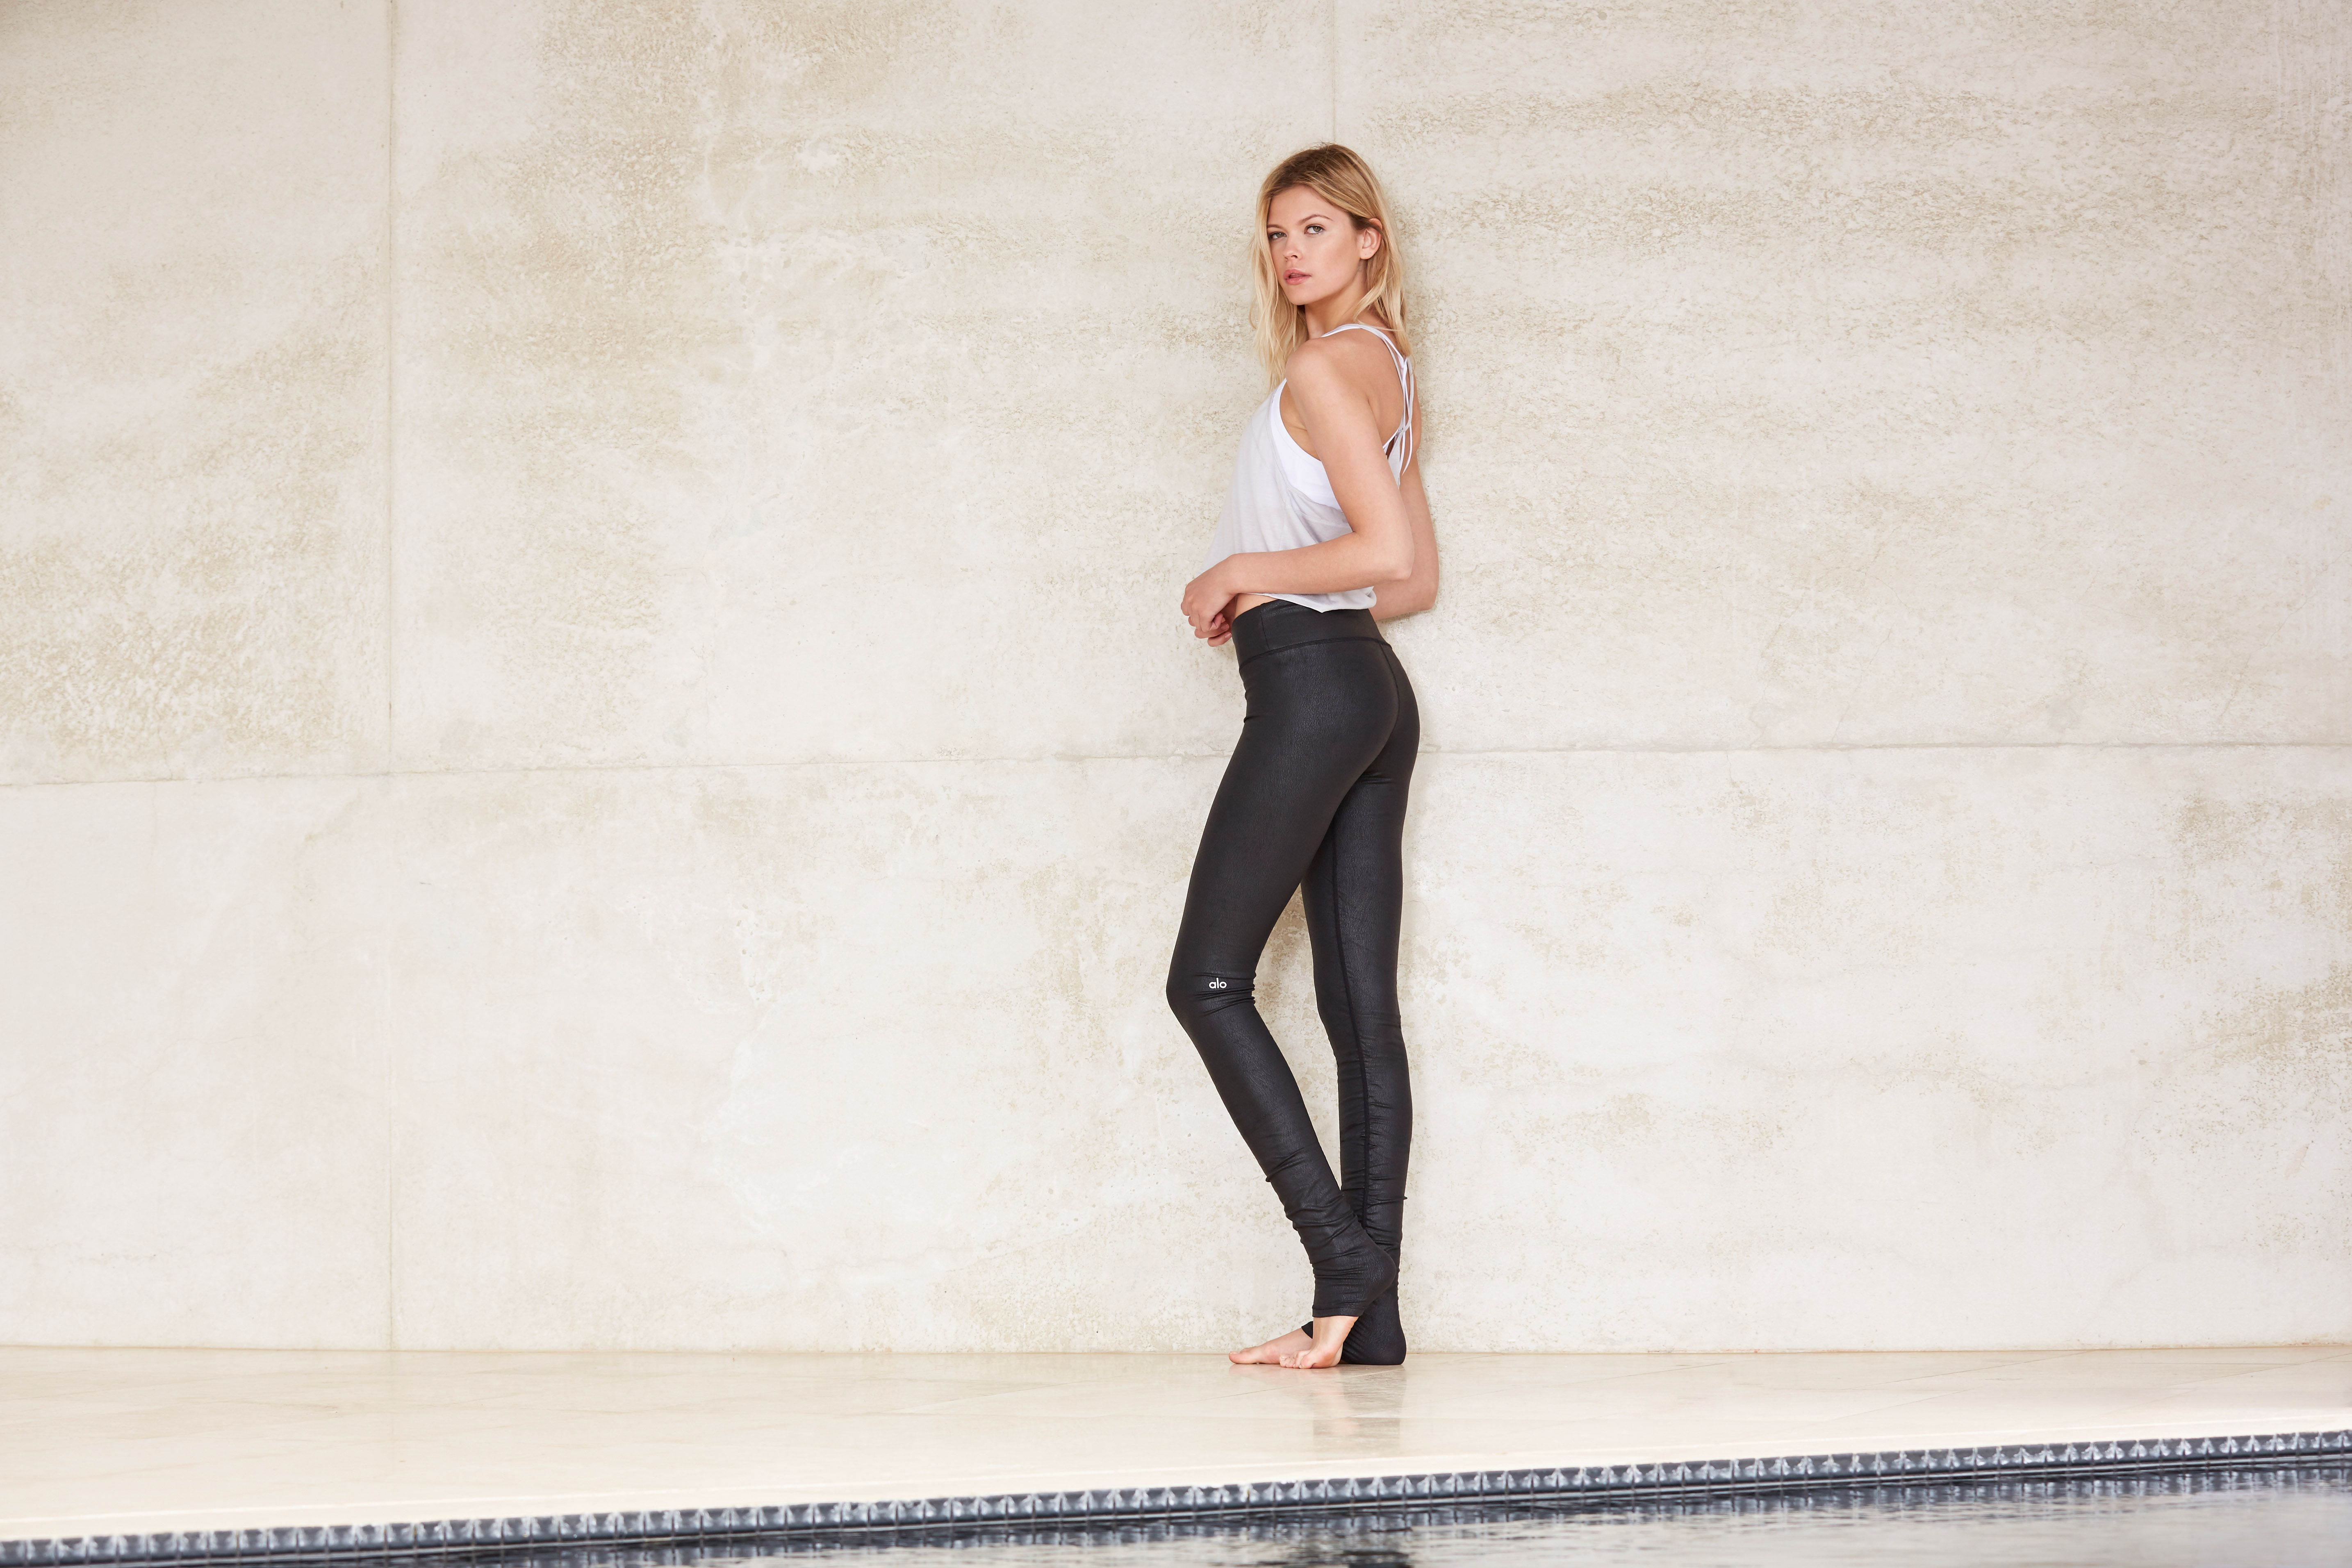 67bf4319e43d7 ALO YOGA || Idol Legging in Black Performance Leather and Curve Tank in  Mist #aloyoga #beagoddess